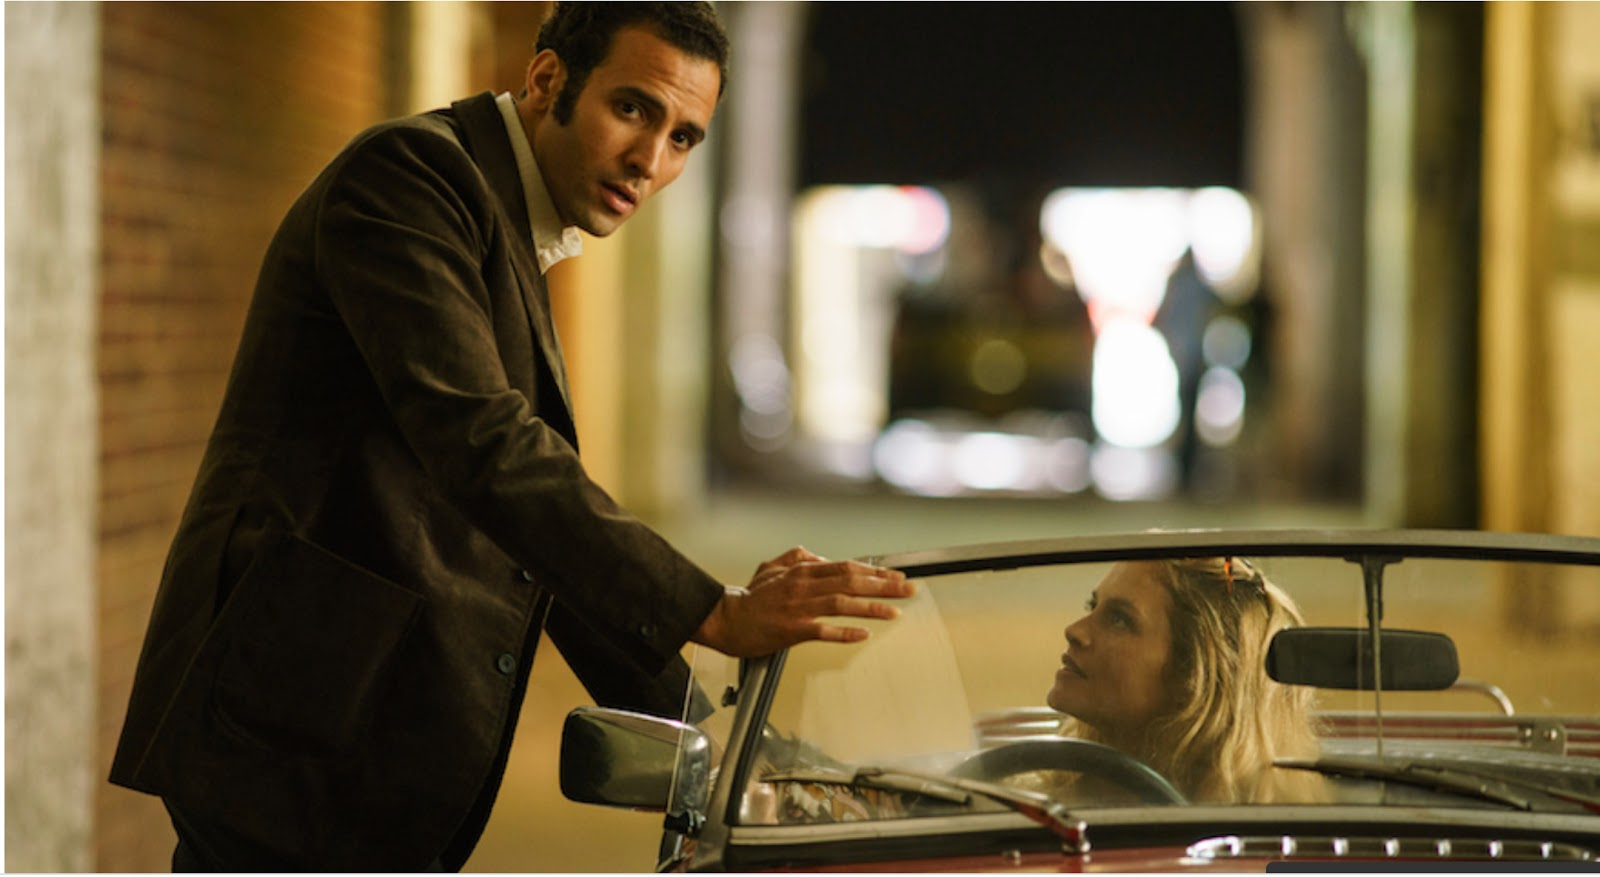 Marwan Kenzari star as spy Ashraf Marwan